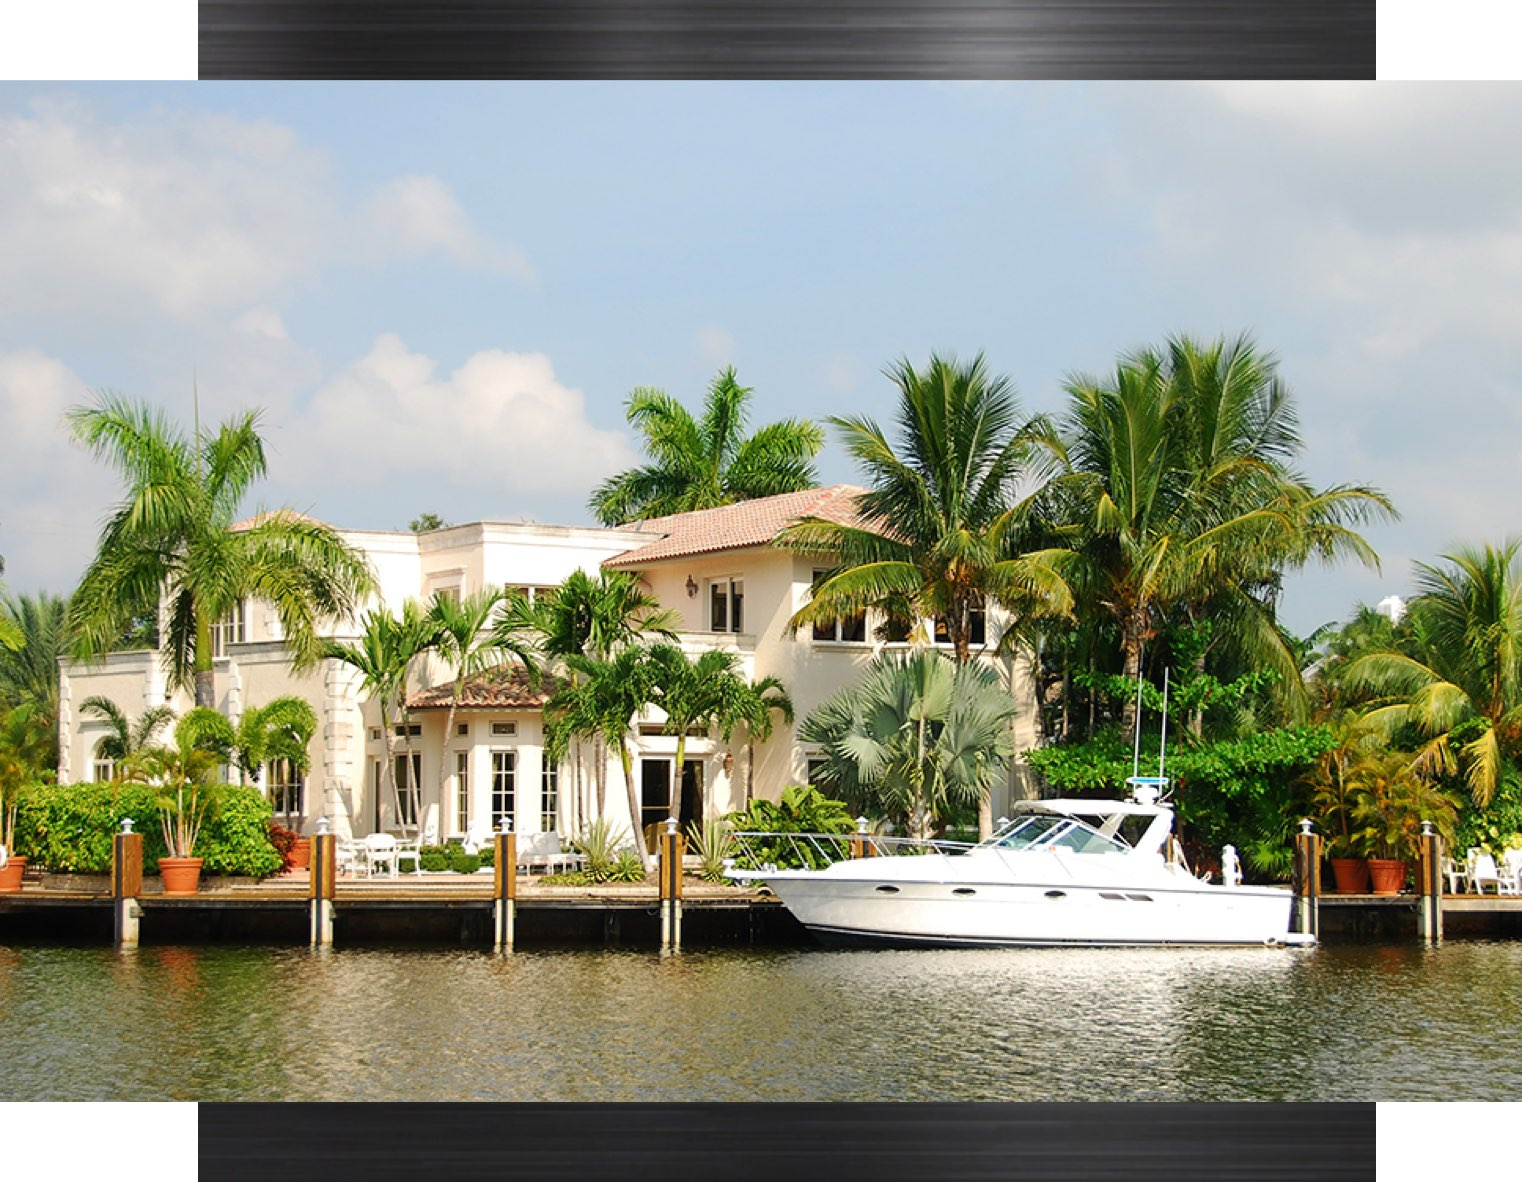 a waterfront home with a yacht